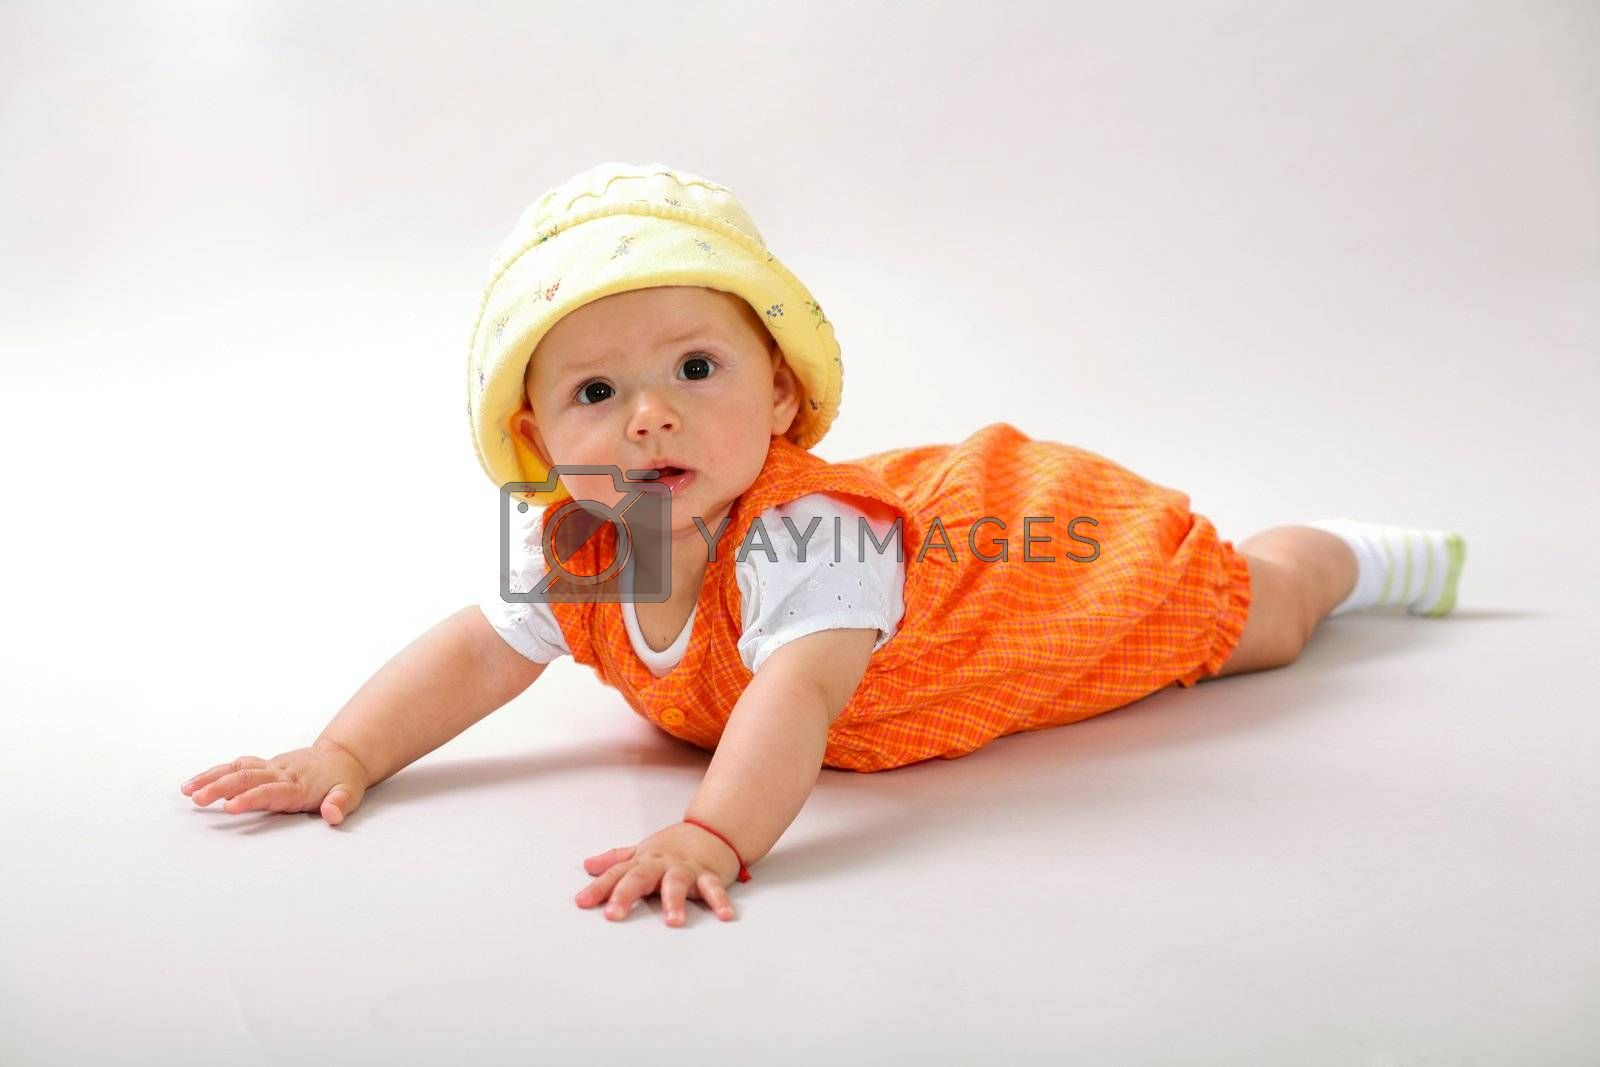 A nice baby-girl crawling on the floor